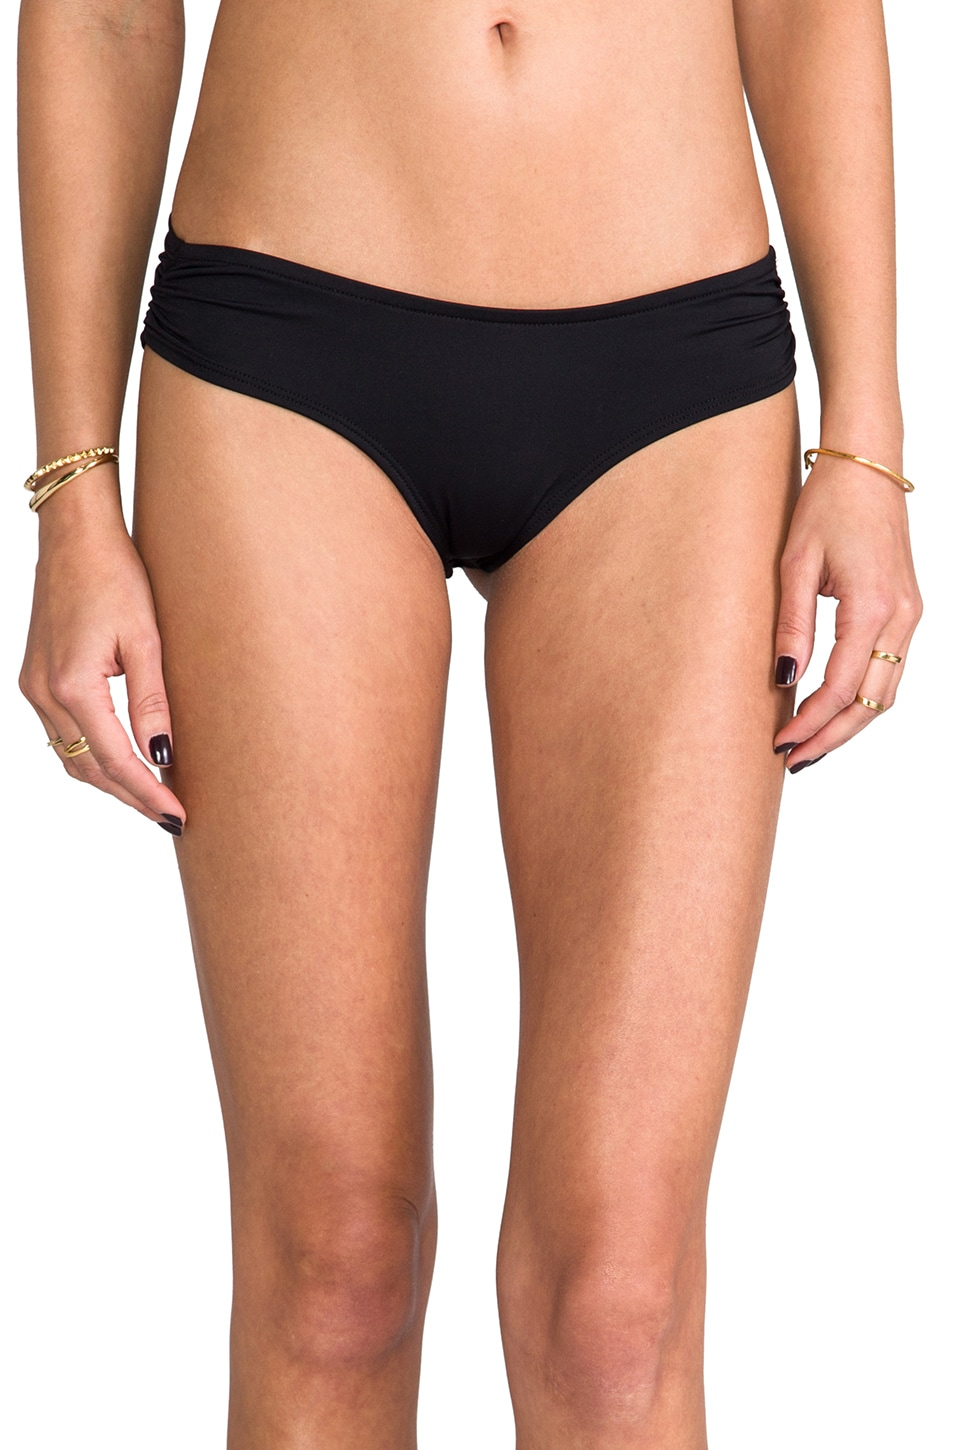 b.swim Sassy Pant in Noir